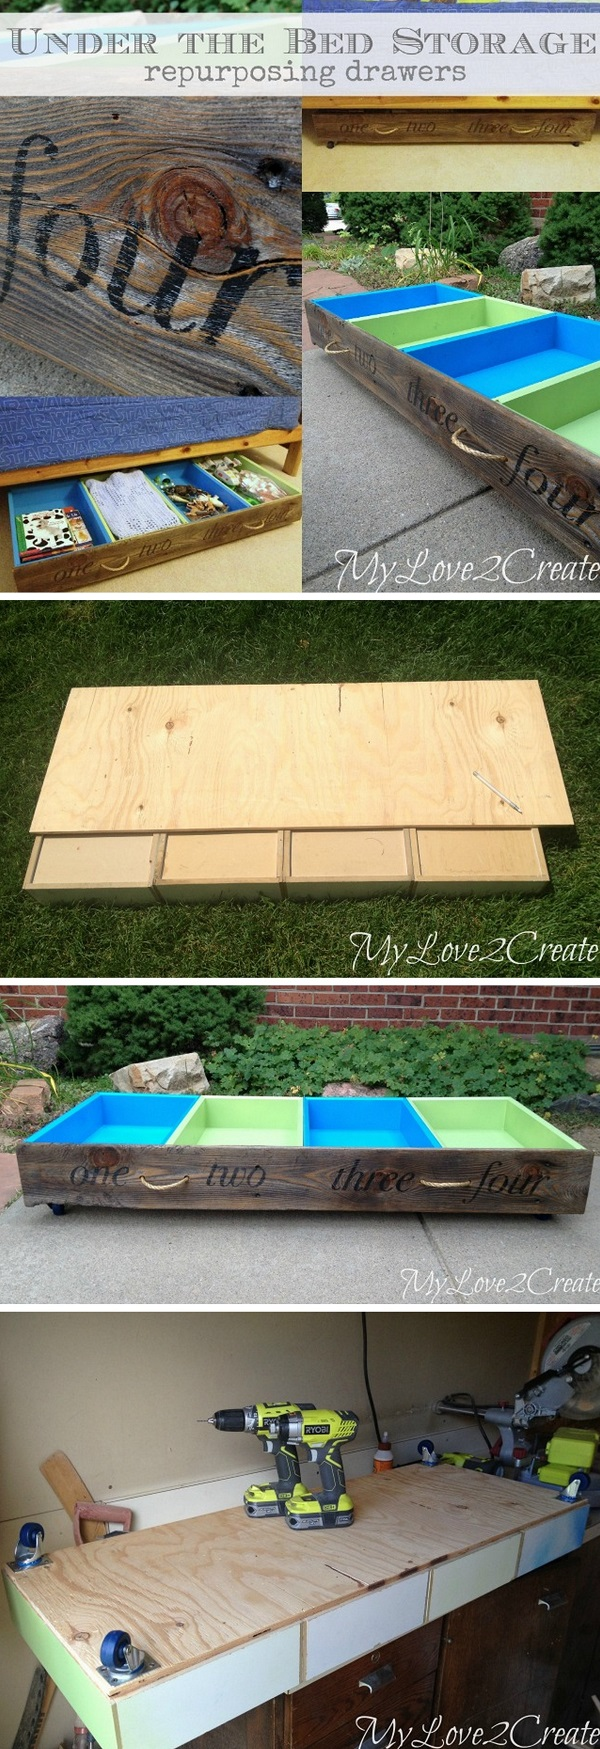 Check out the tutorial how to build DIY under the bed repurposed storage drawers